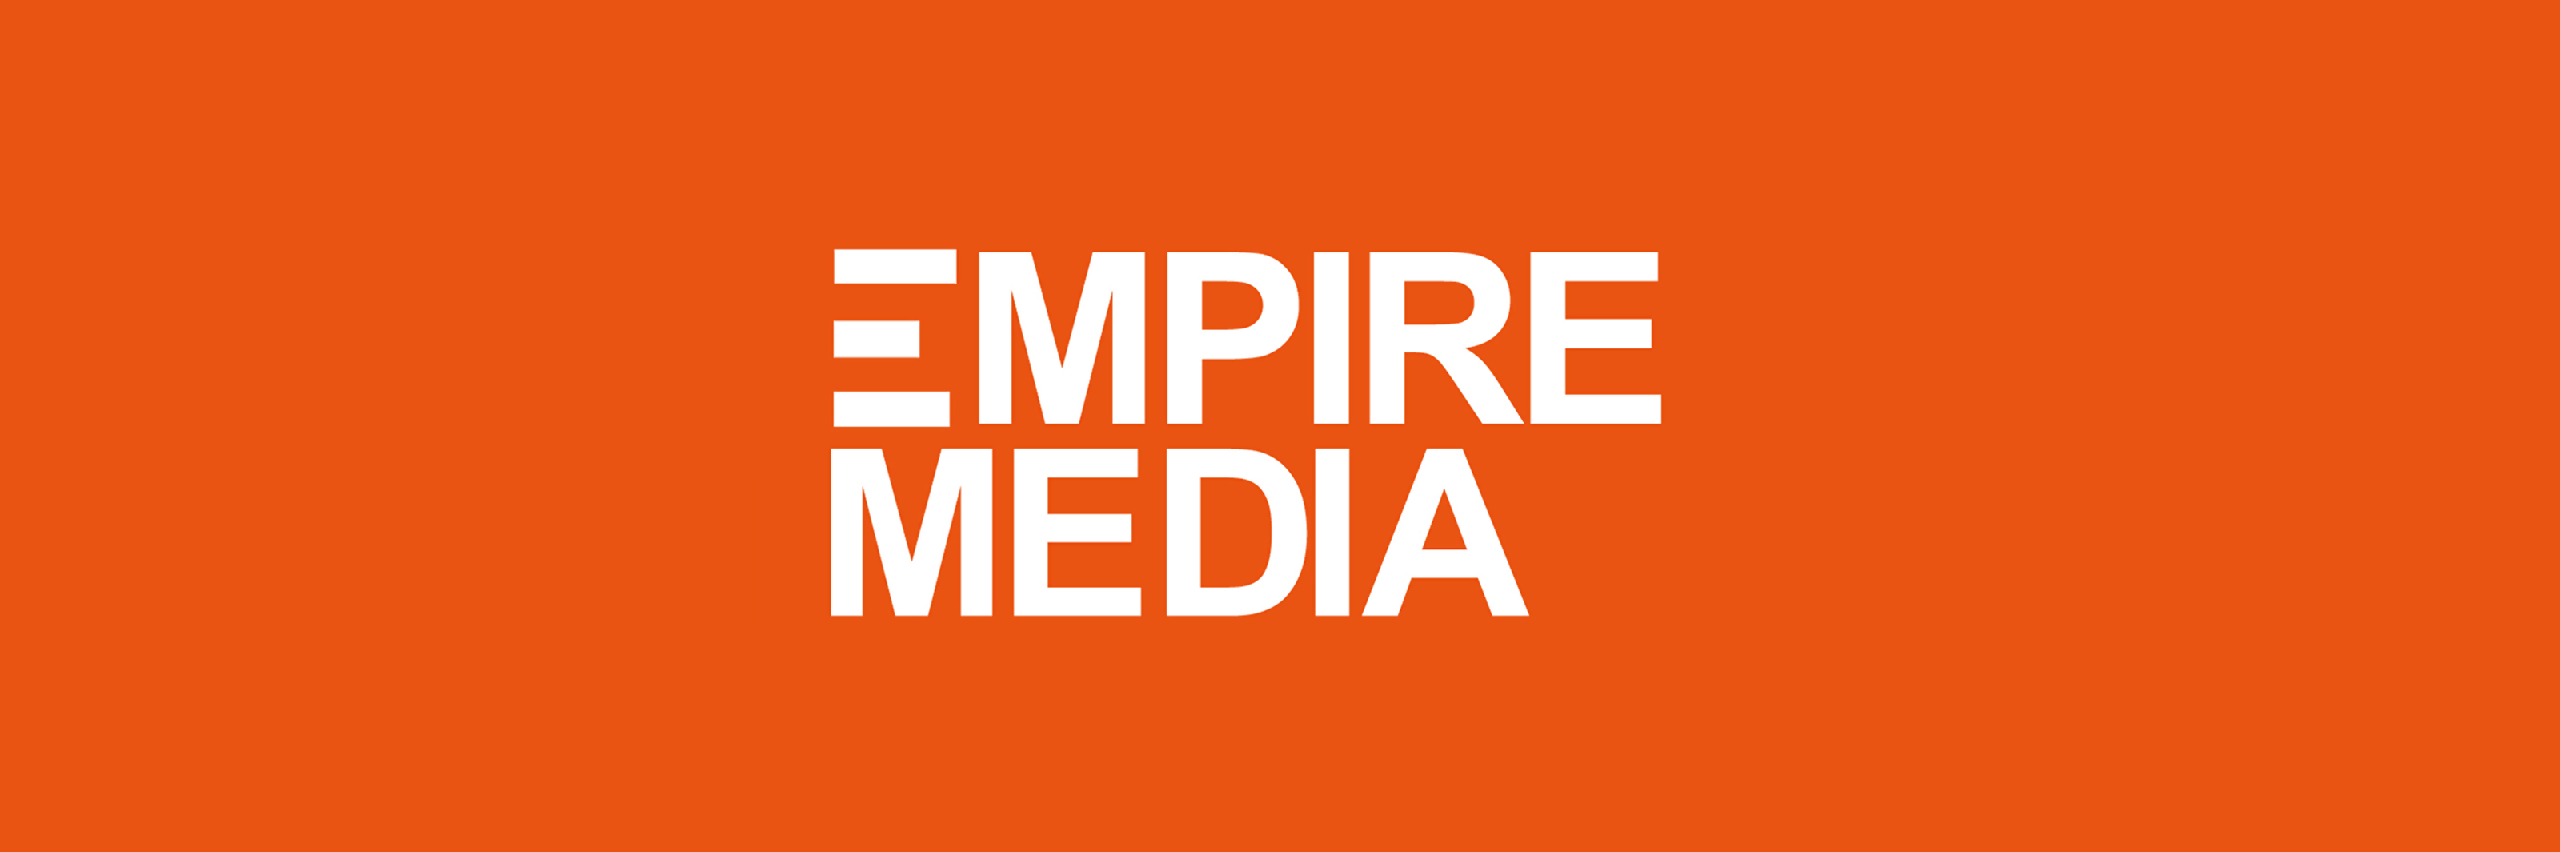 EMPIRE MEDIA WORLD NEWS